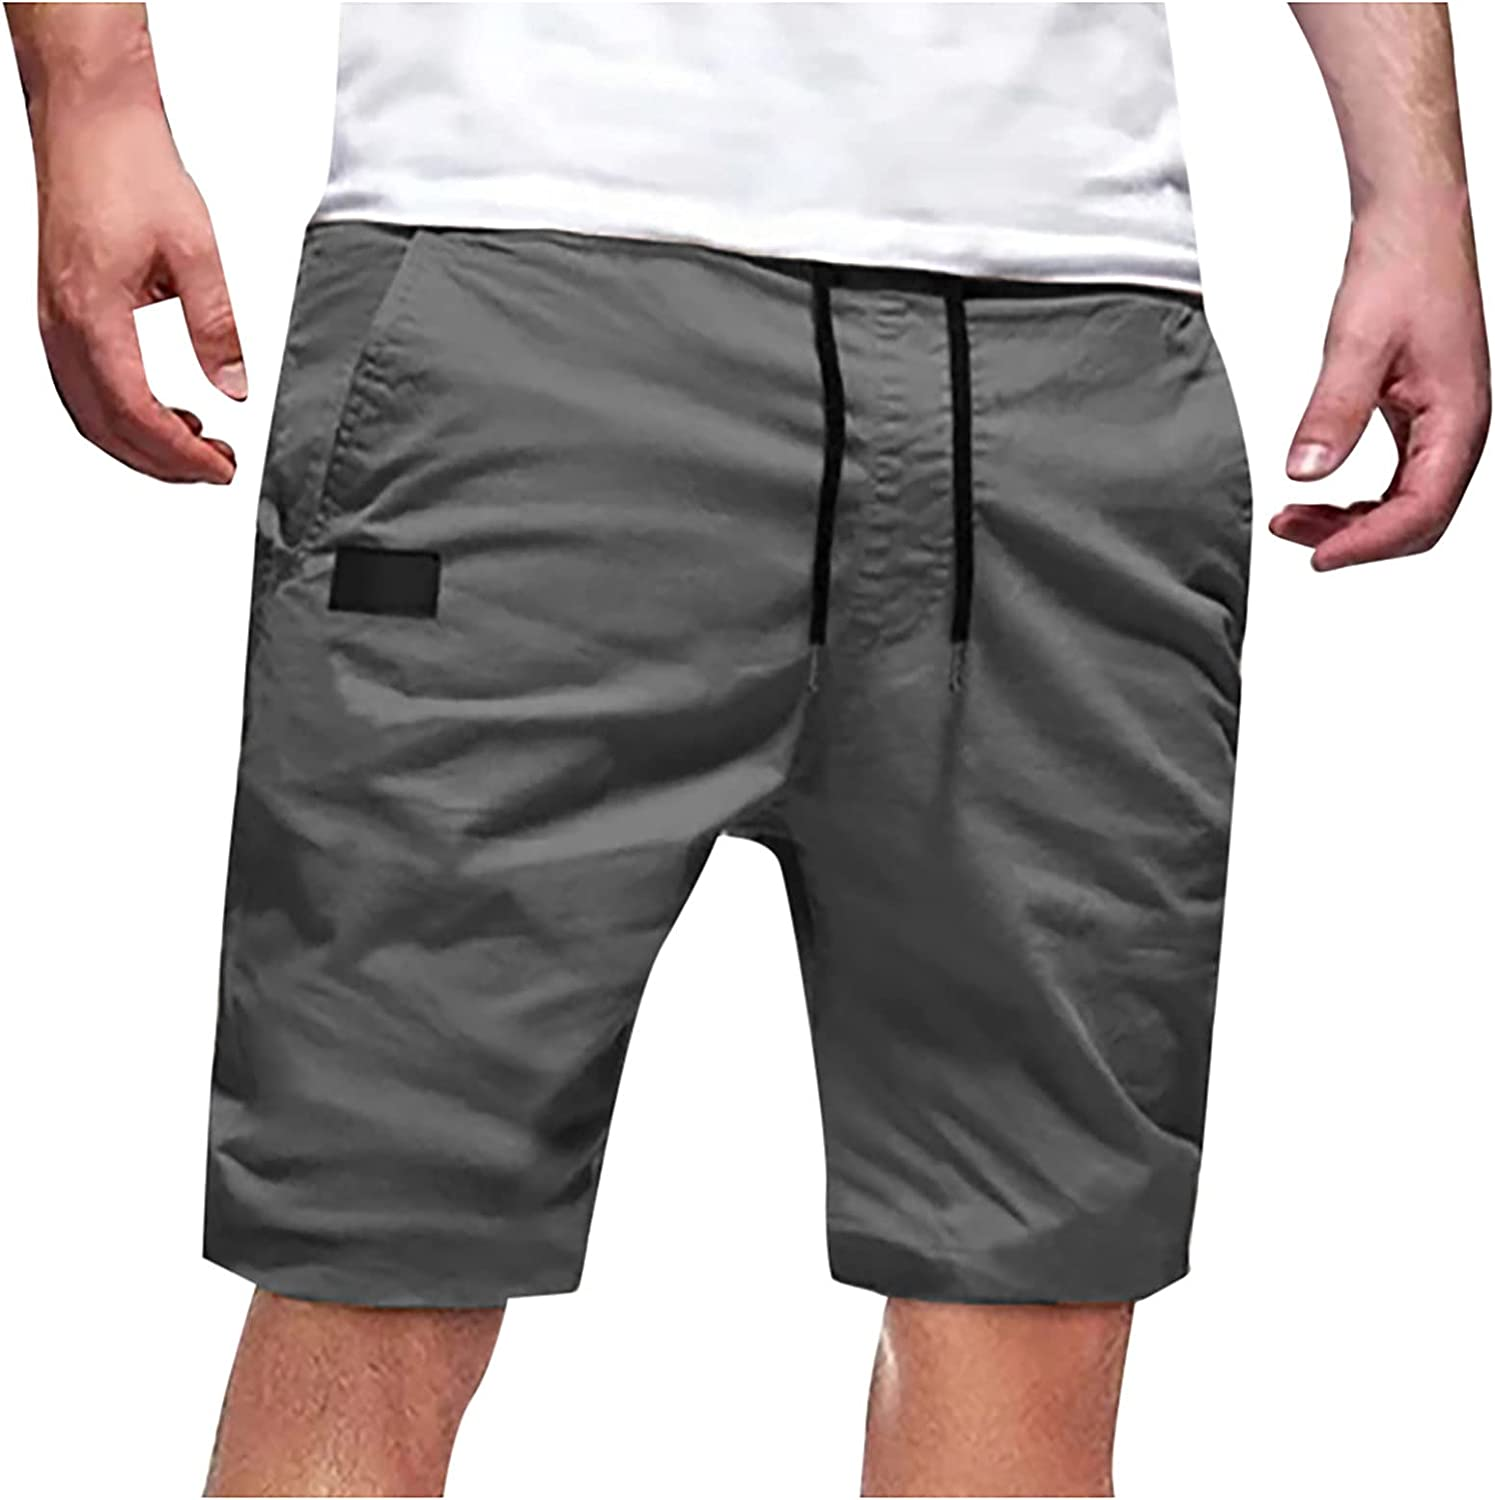 miqiqism Men's Quick Dry Thin Workout Running Shorts Plus Size Athletic Gym Shorts Training Bodybuilding Jogger Short